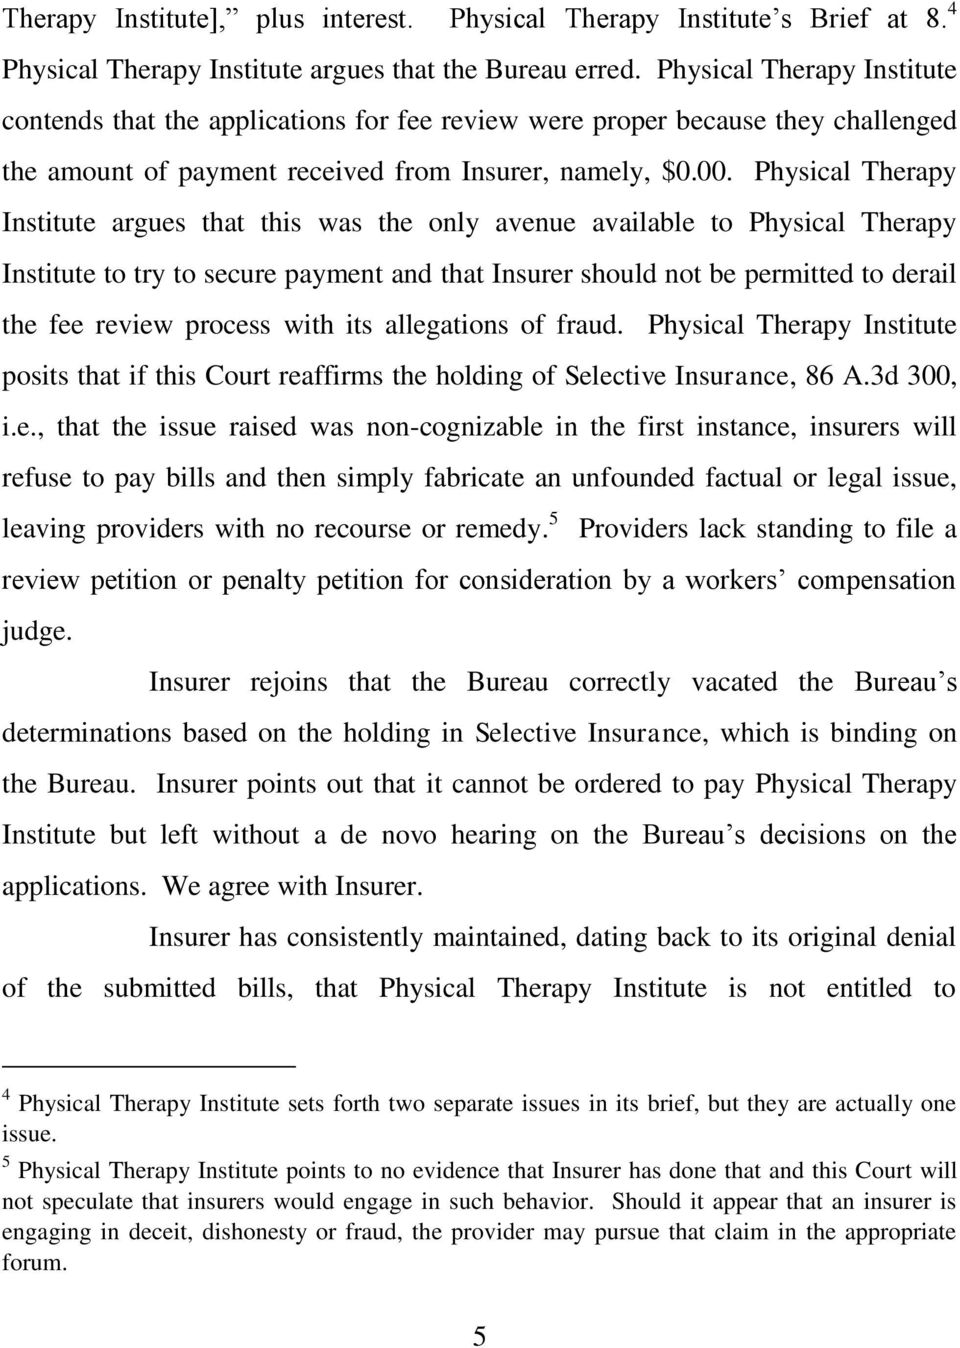 Physical Therapy Institute argues that this was the only avenue available to Physical Therapy Institute to try to secure payment and that Insurer should not be permitted to derail the fee review